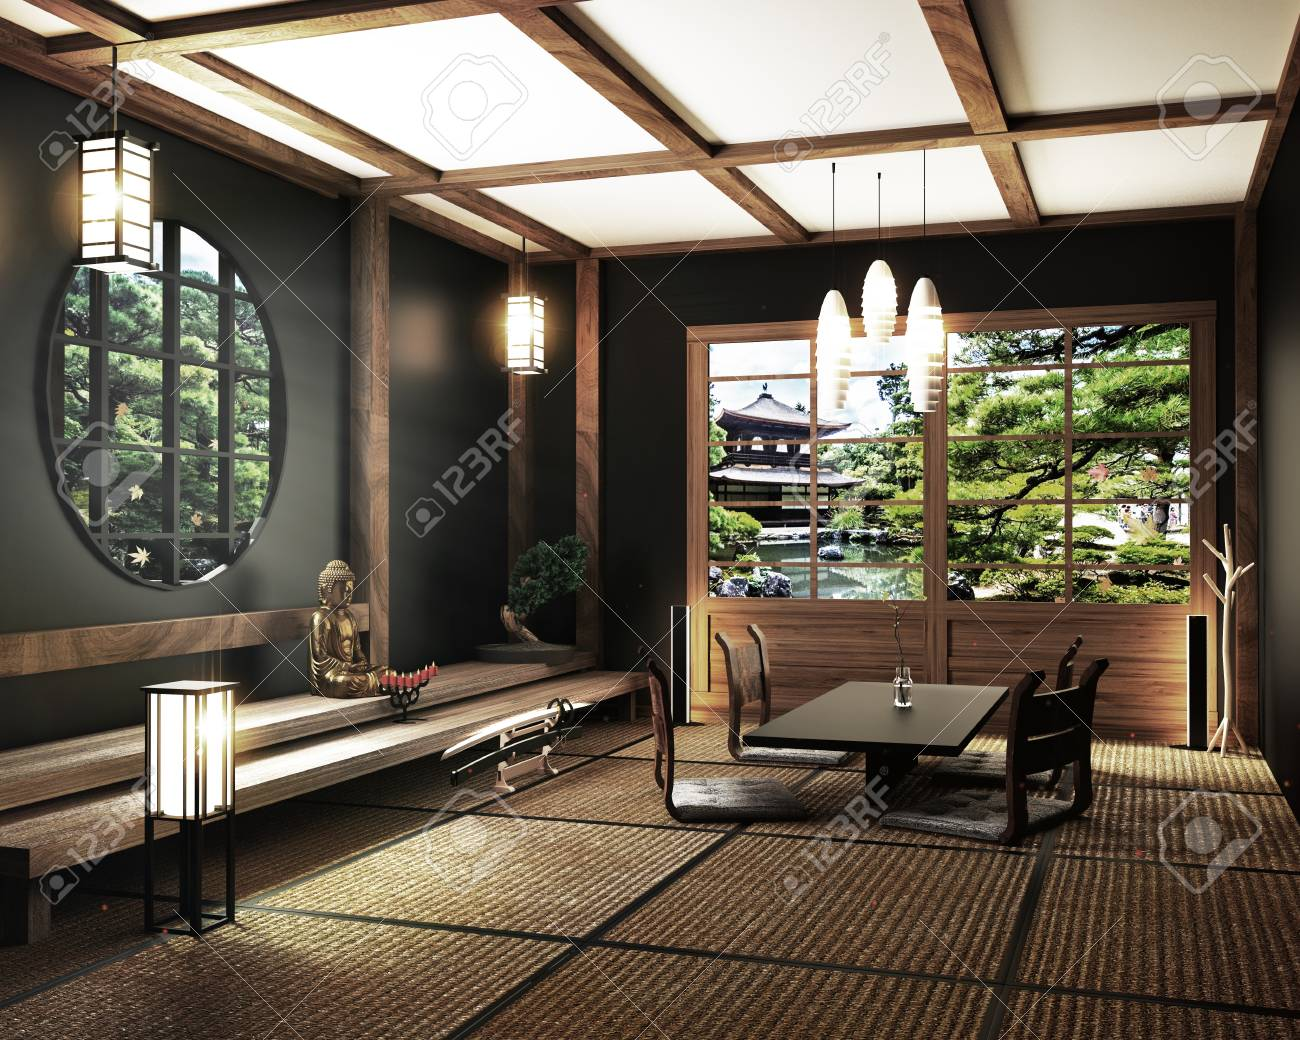 Interior Design, Zen Living Room With Table Katana Sword Lamp And Bonsai  Tree On Room